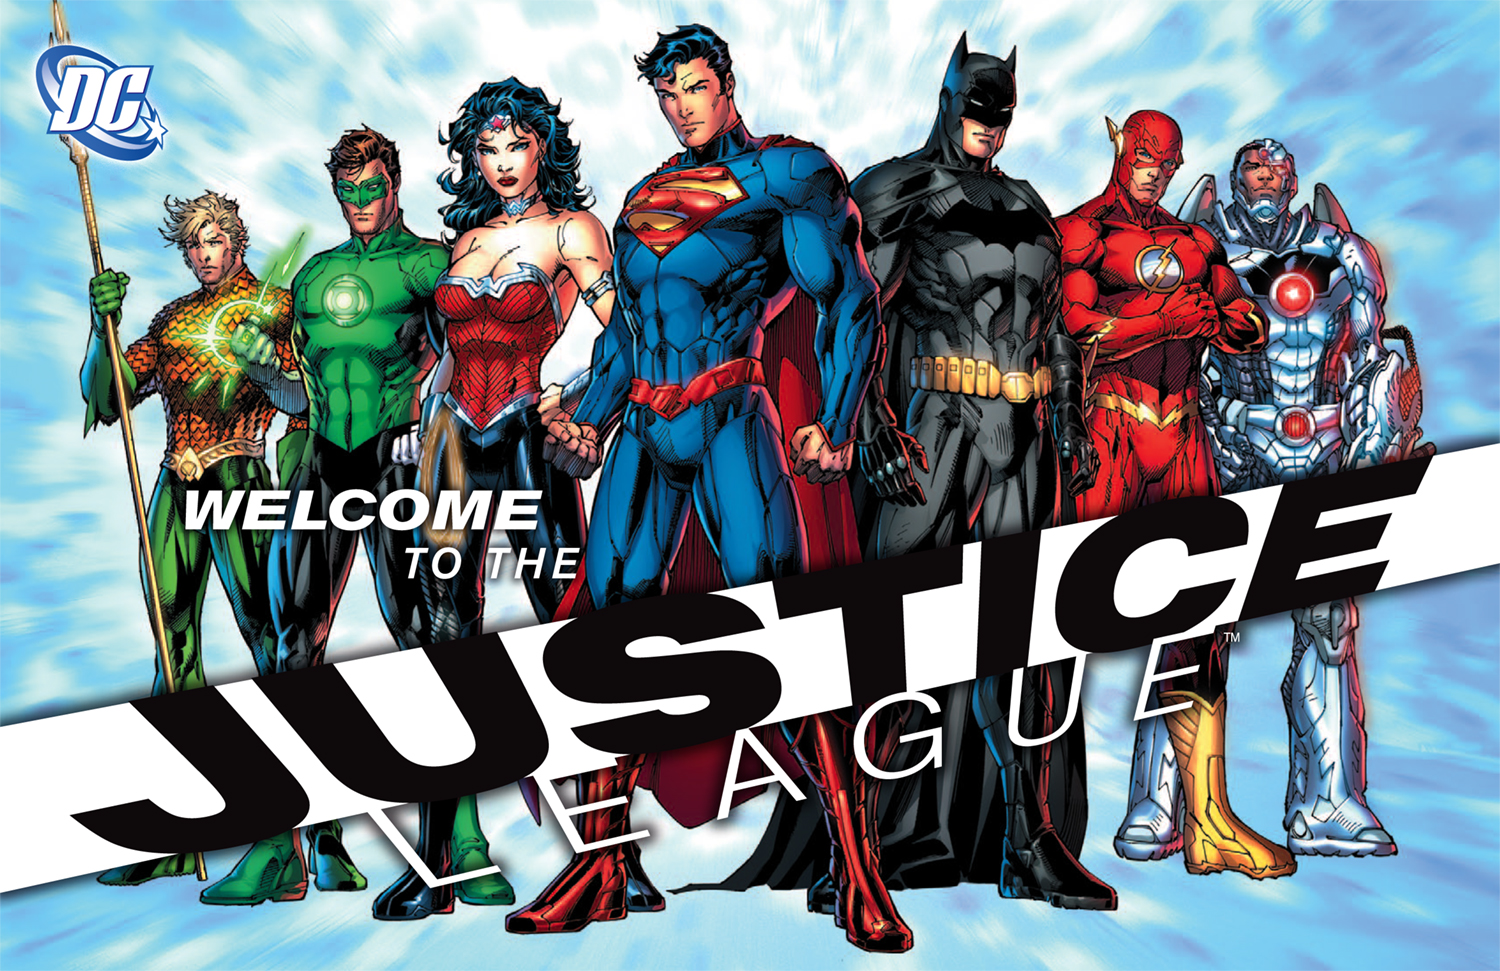 Free Download Justice League 1500x971 For Your Desktop Mobile